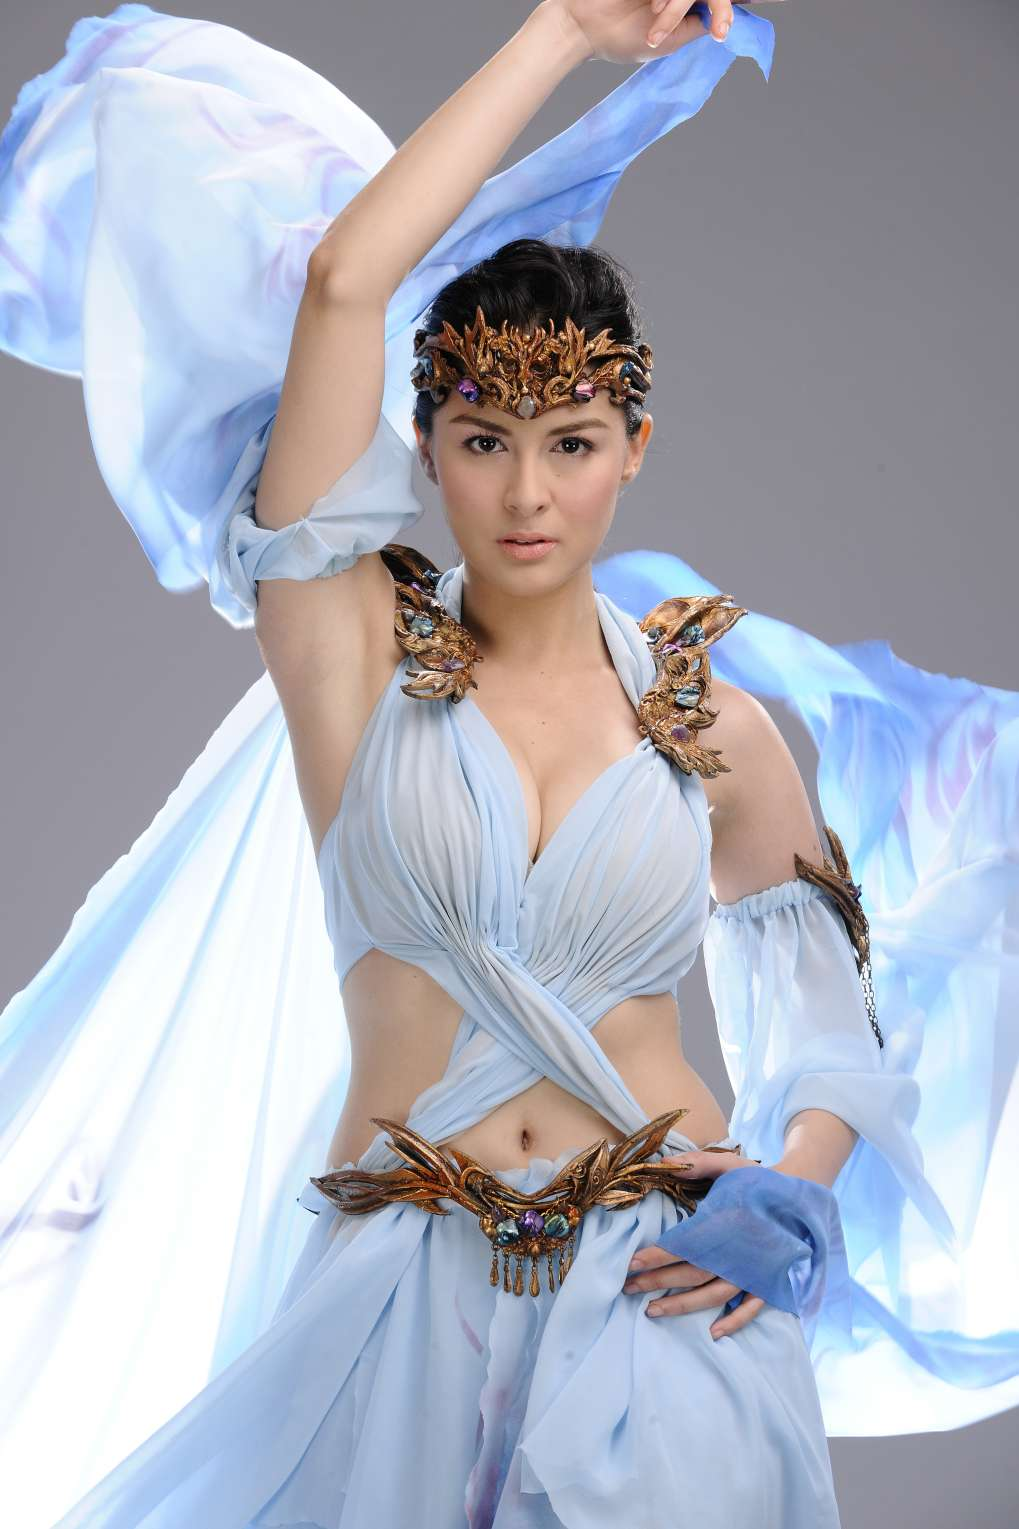 marian rivera nude photo http://www.showbiz-portal.com/2011/12/marian-rivera-pictures-in-panday.html